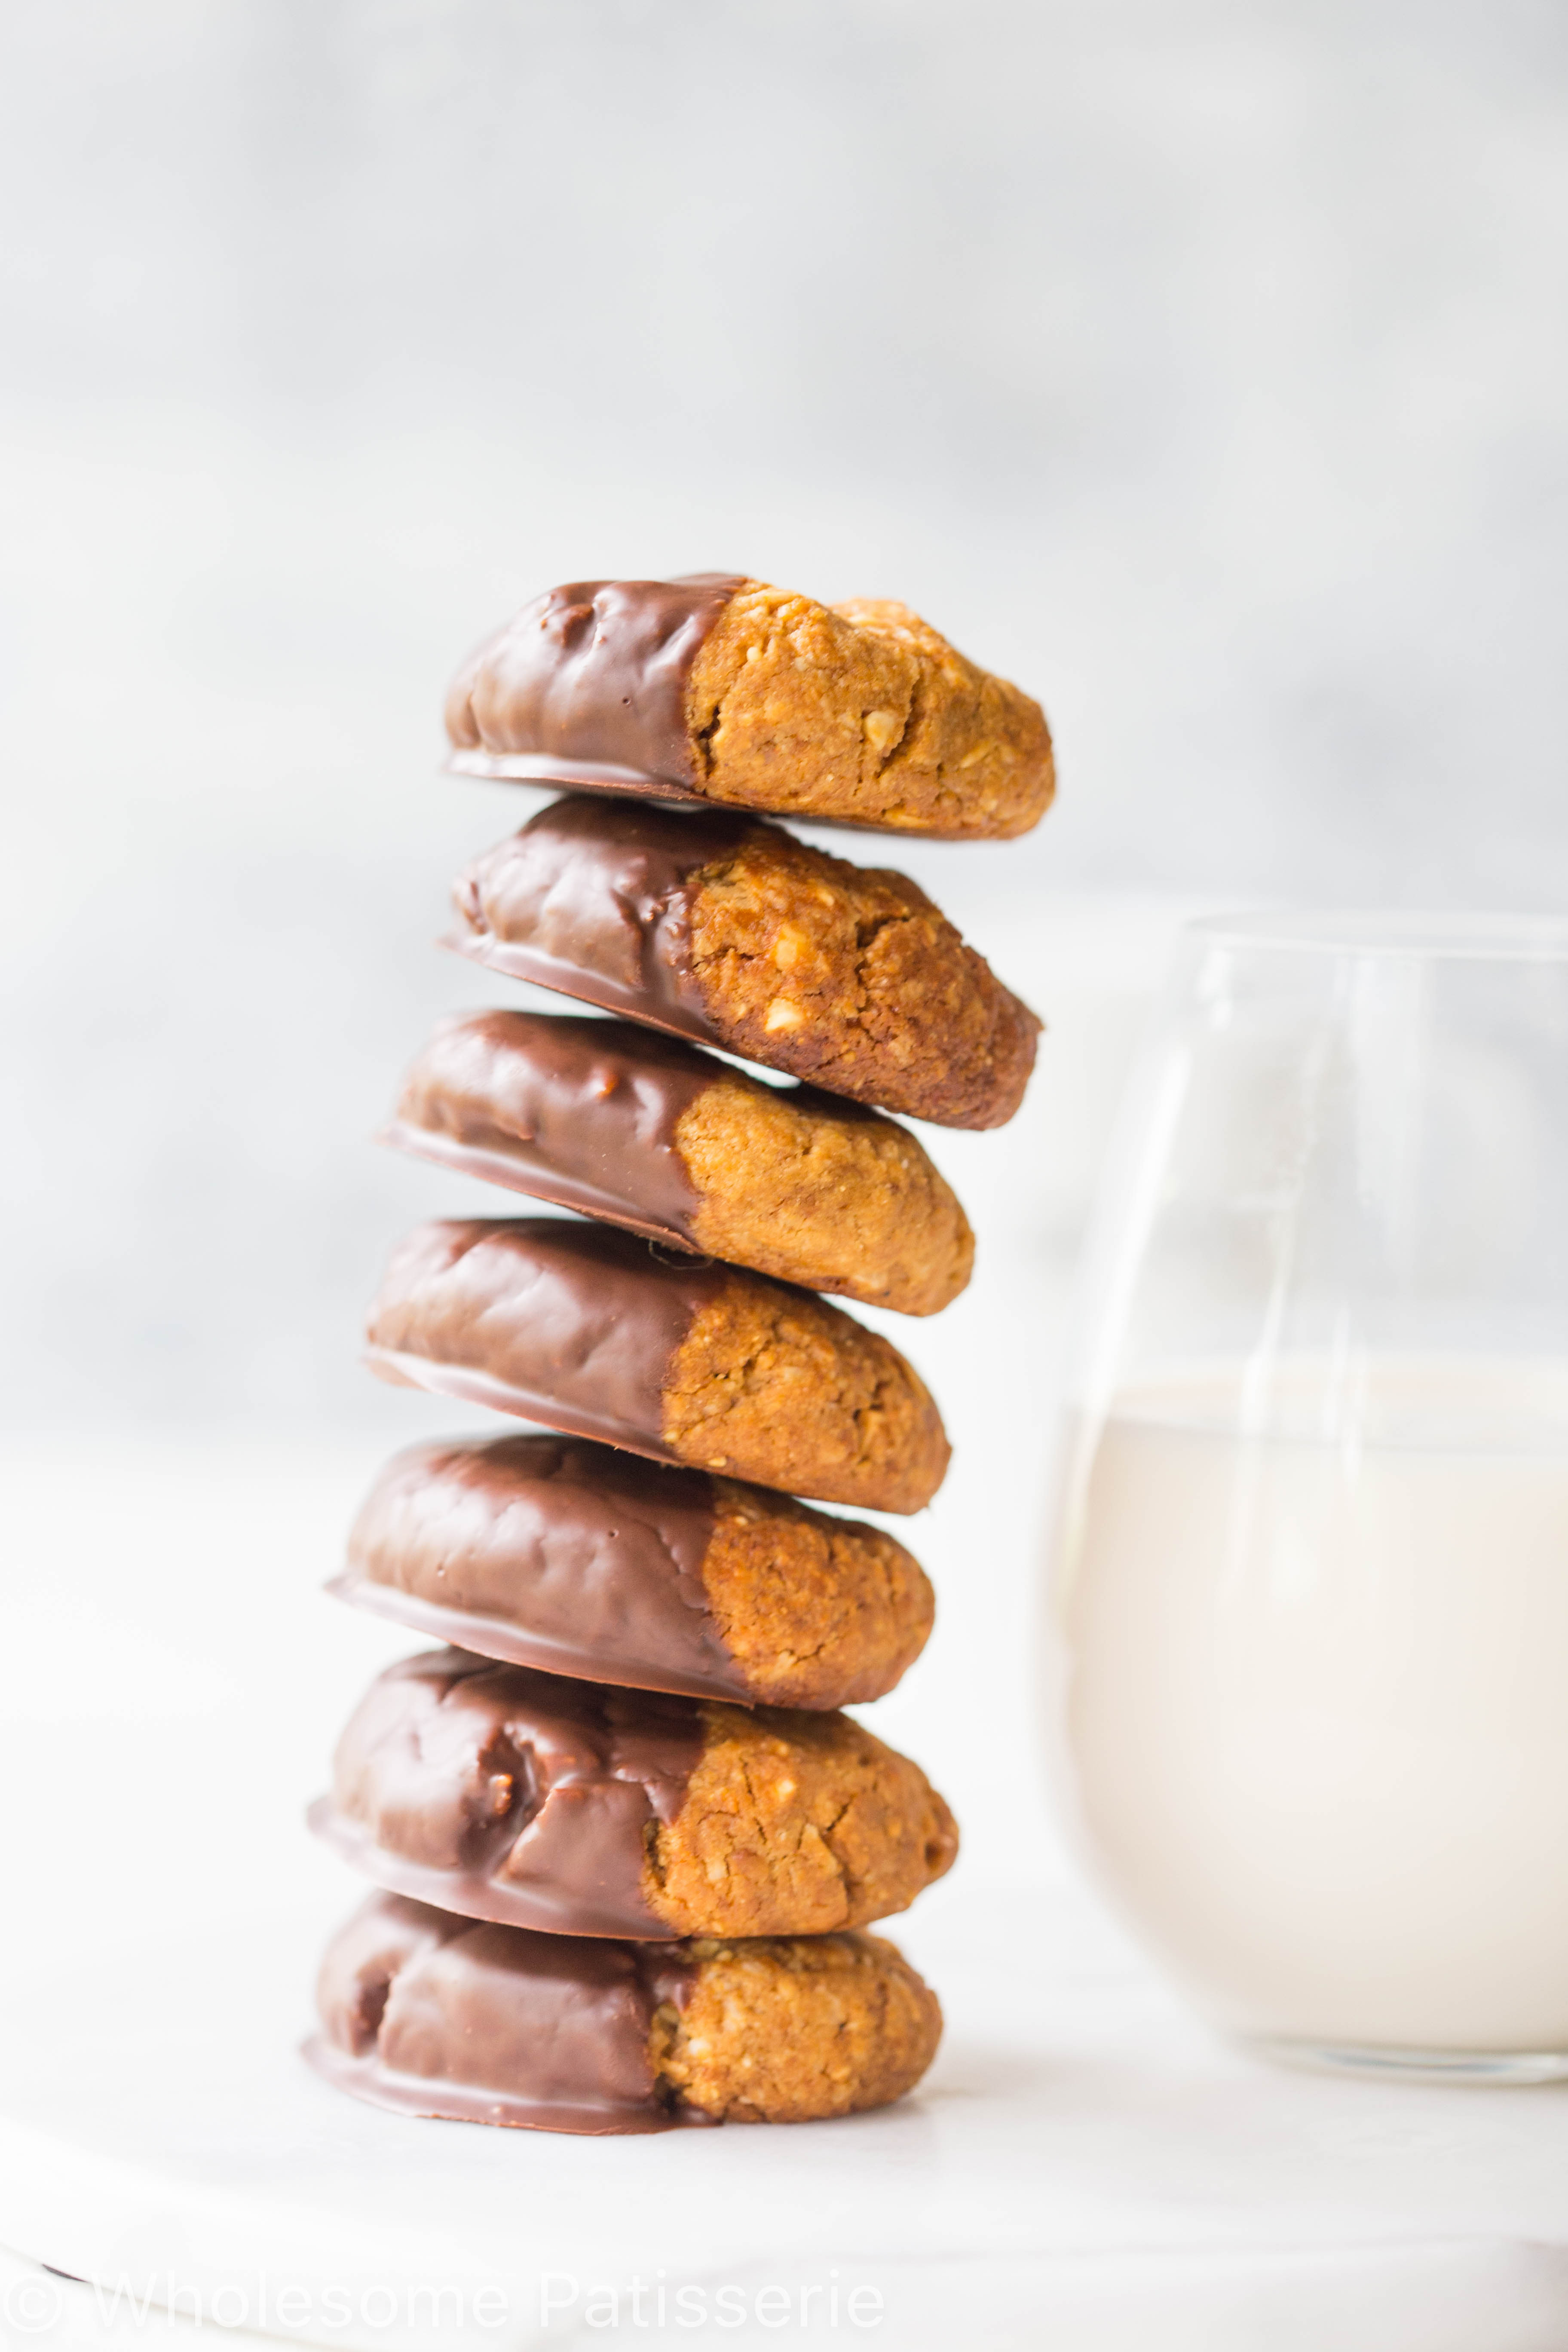 Chocolate Dipped Peanut Butter Coconut Cookies